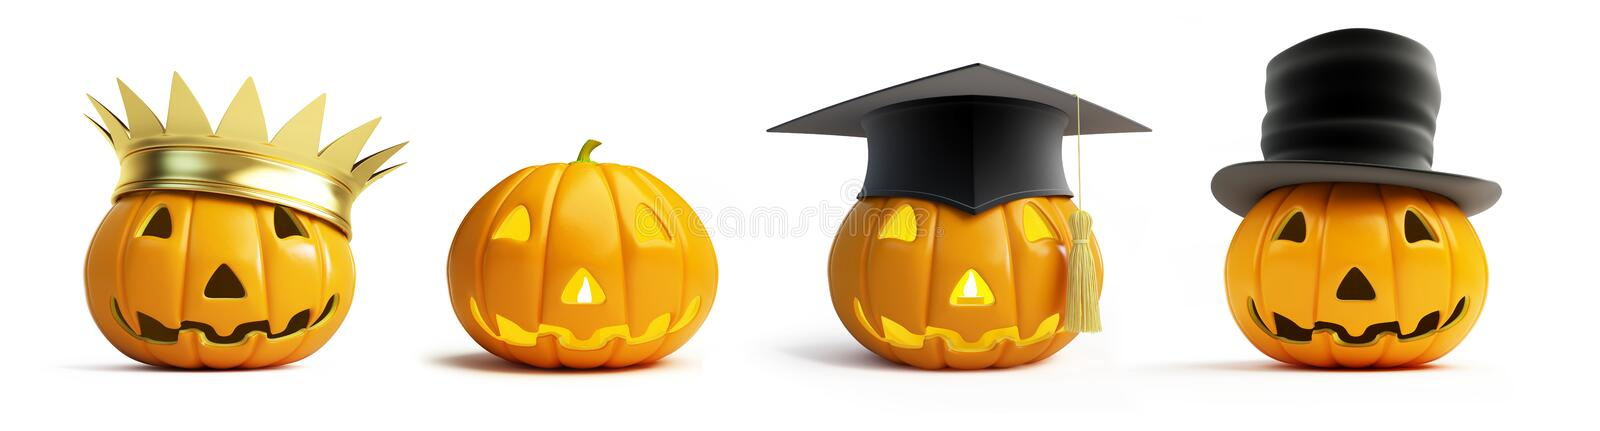 Halloween pumpkin crown on a white background 3D illustration, stock illustration